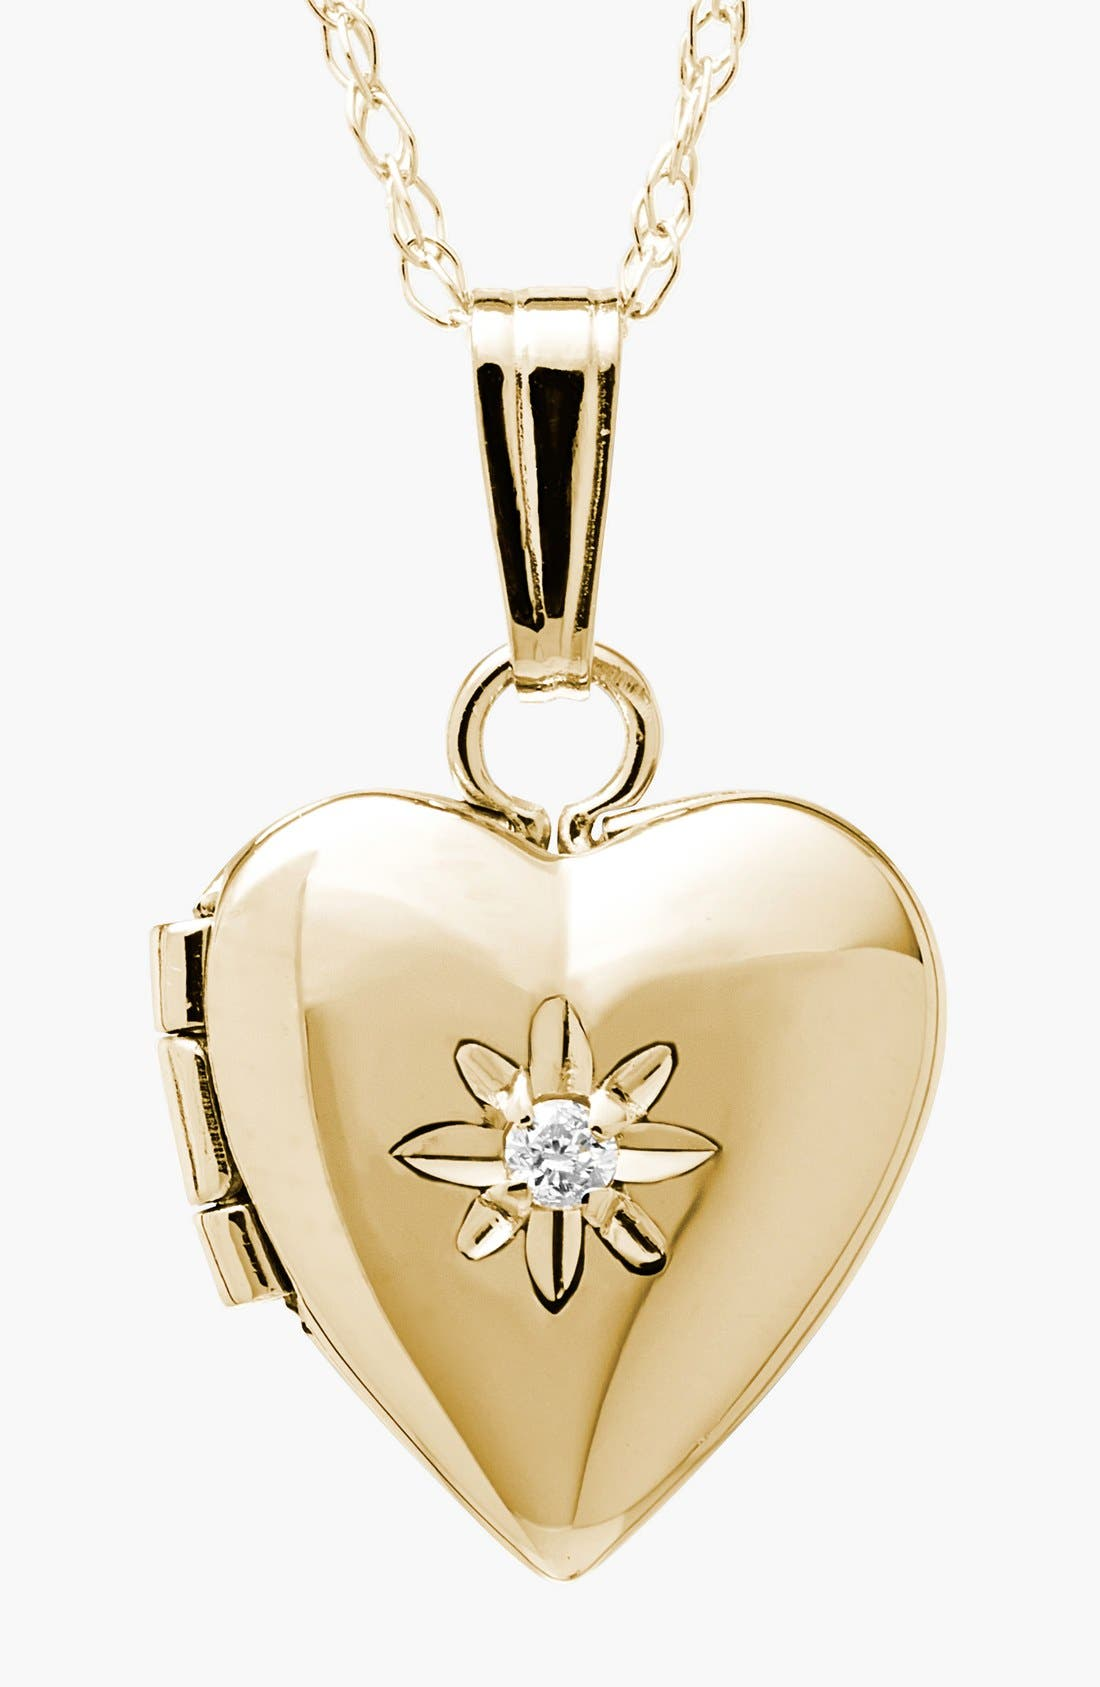 14k Gold & Diamond Heart Locket Necklace,                         Main,                         color, Gold